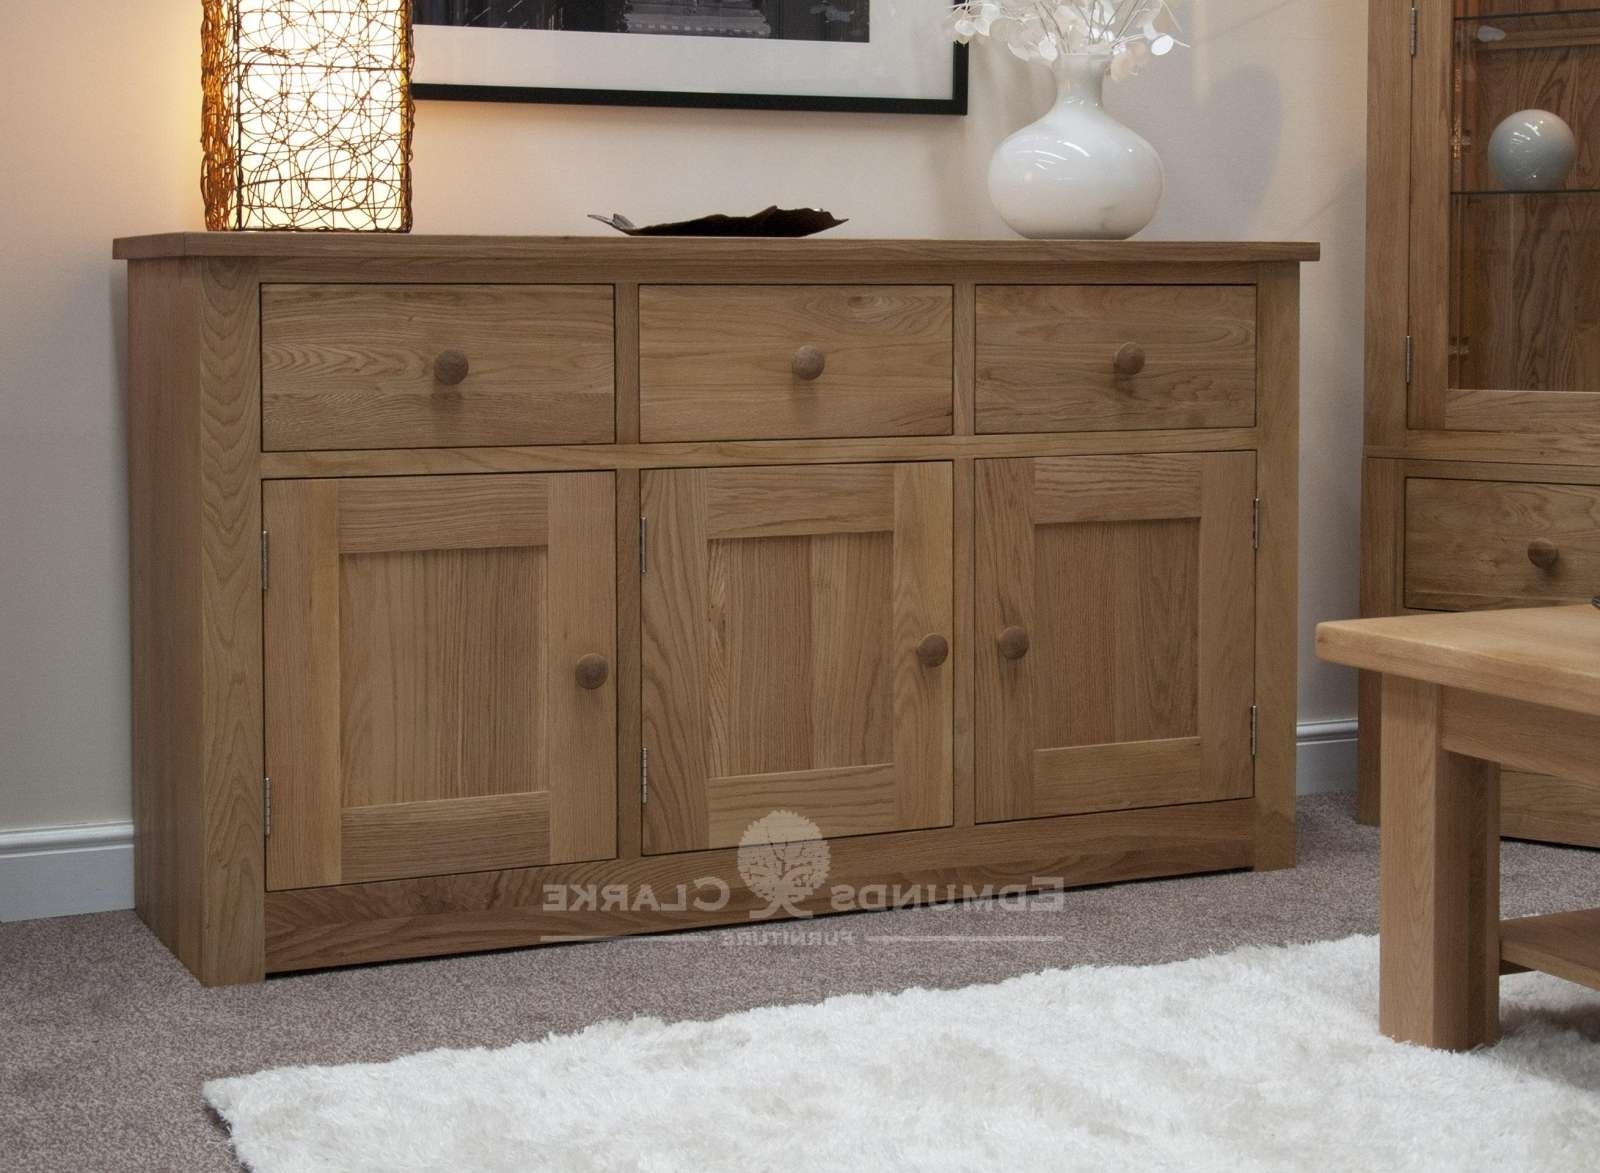 Oak Large Sideboard – Oak Sideboards For The Kitchen, Dining Room With Regard To Lounge Sideboards (View 9 of 20)